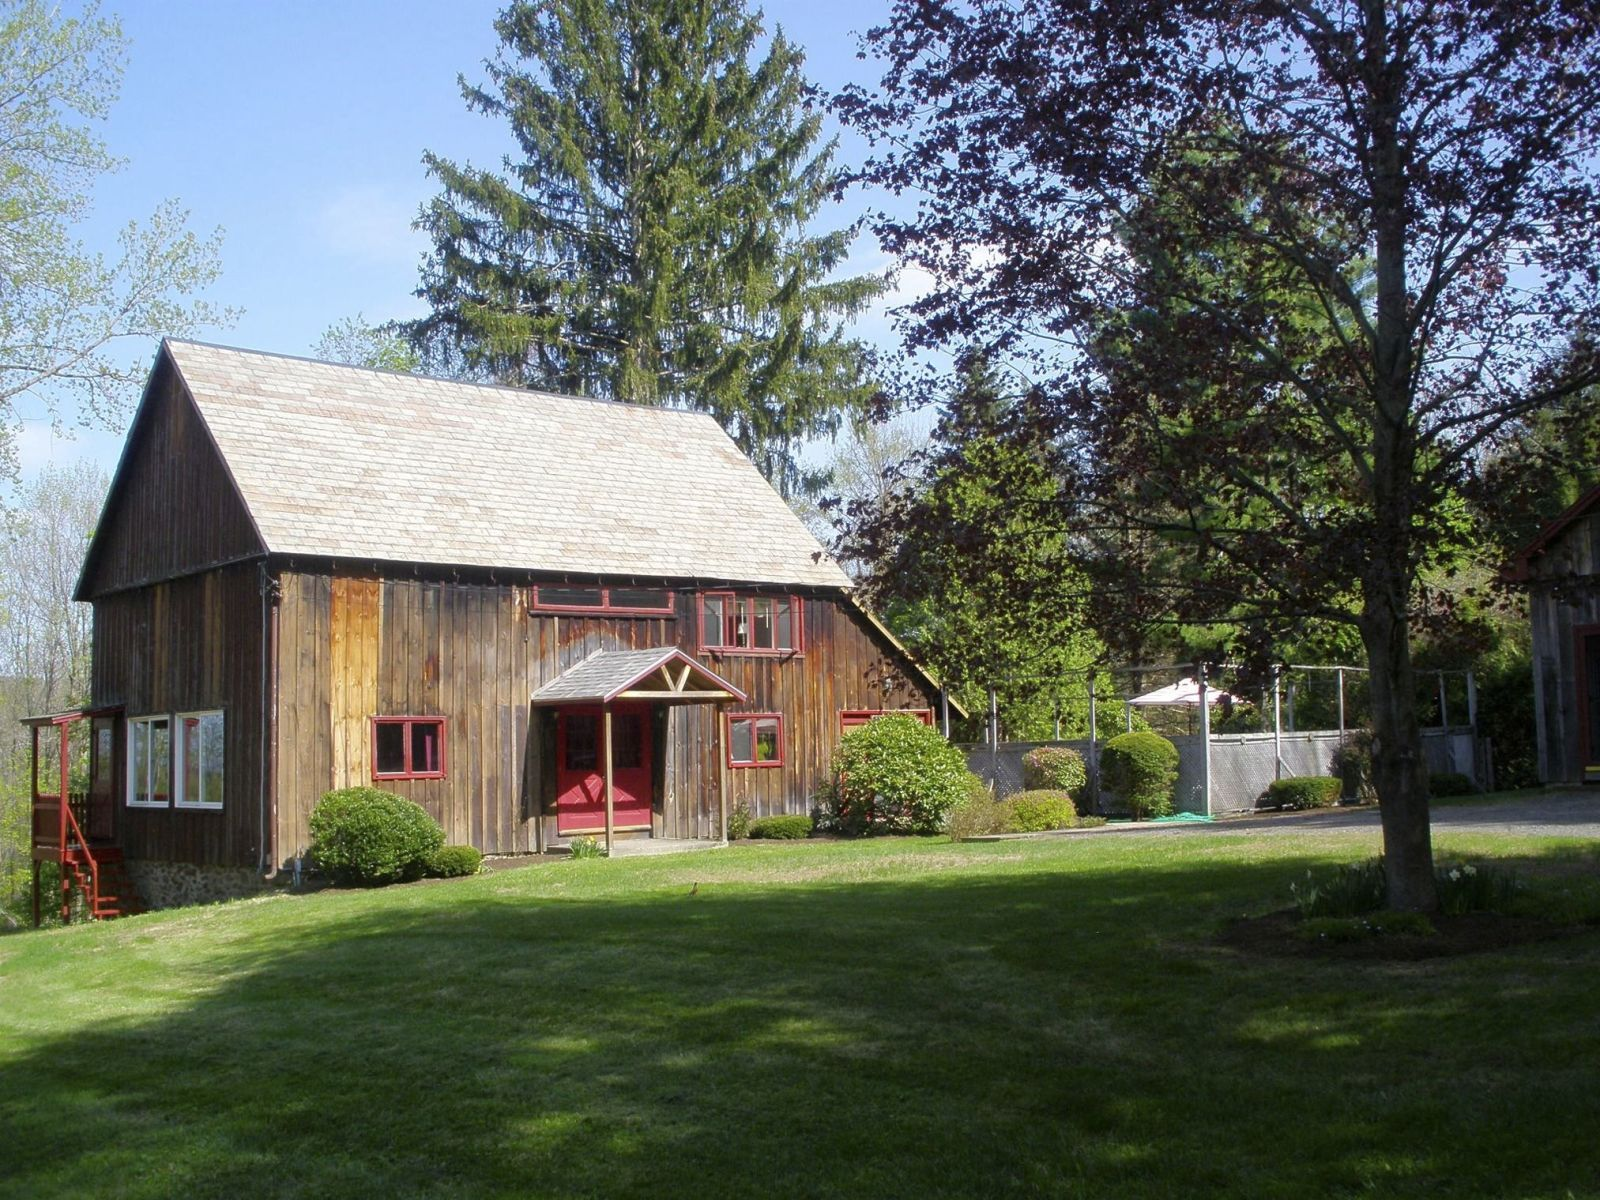 6 Converted Barn Homes For Sale Across America Barns Old And